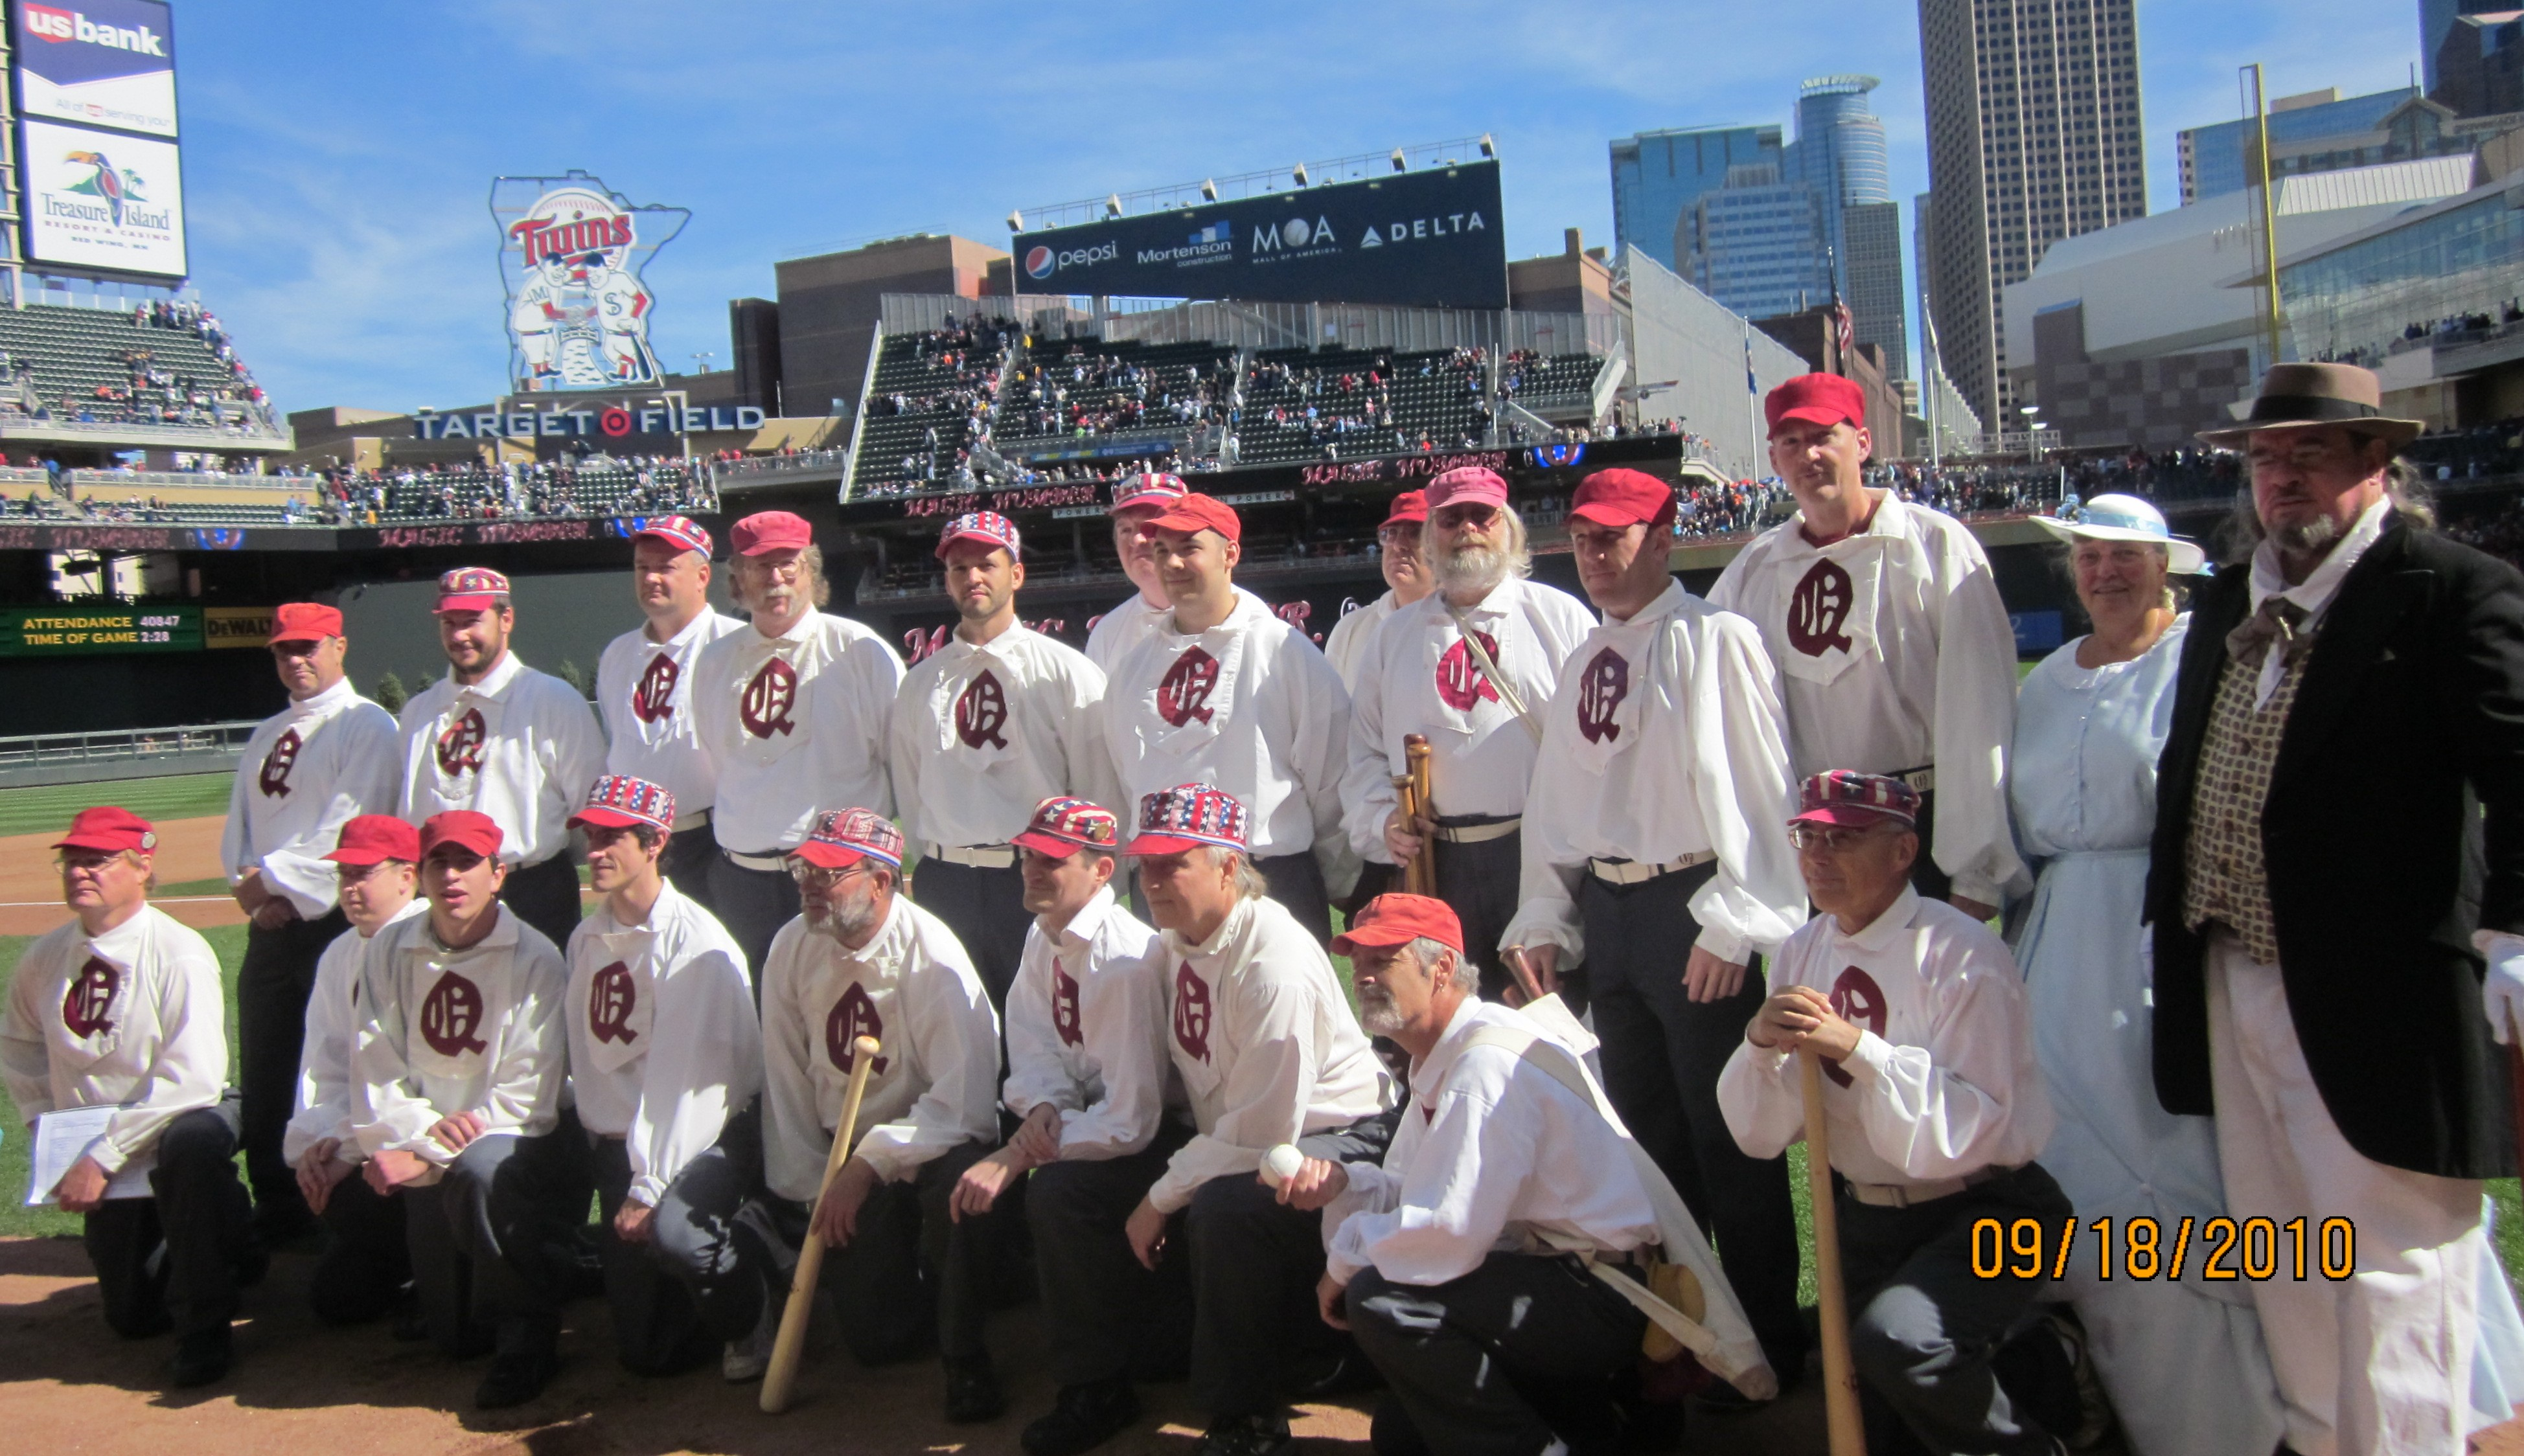 photo of Quicksteps base ball club at Target Field